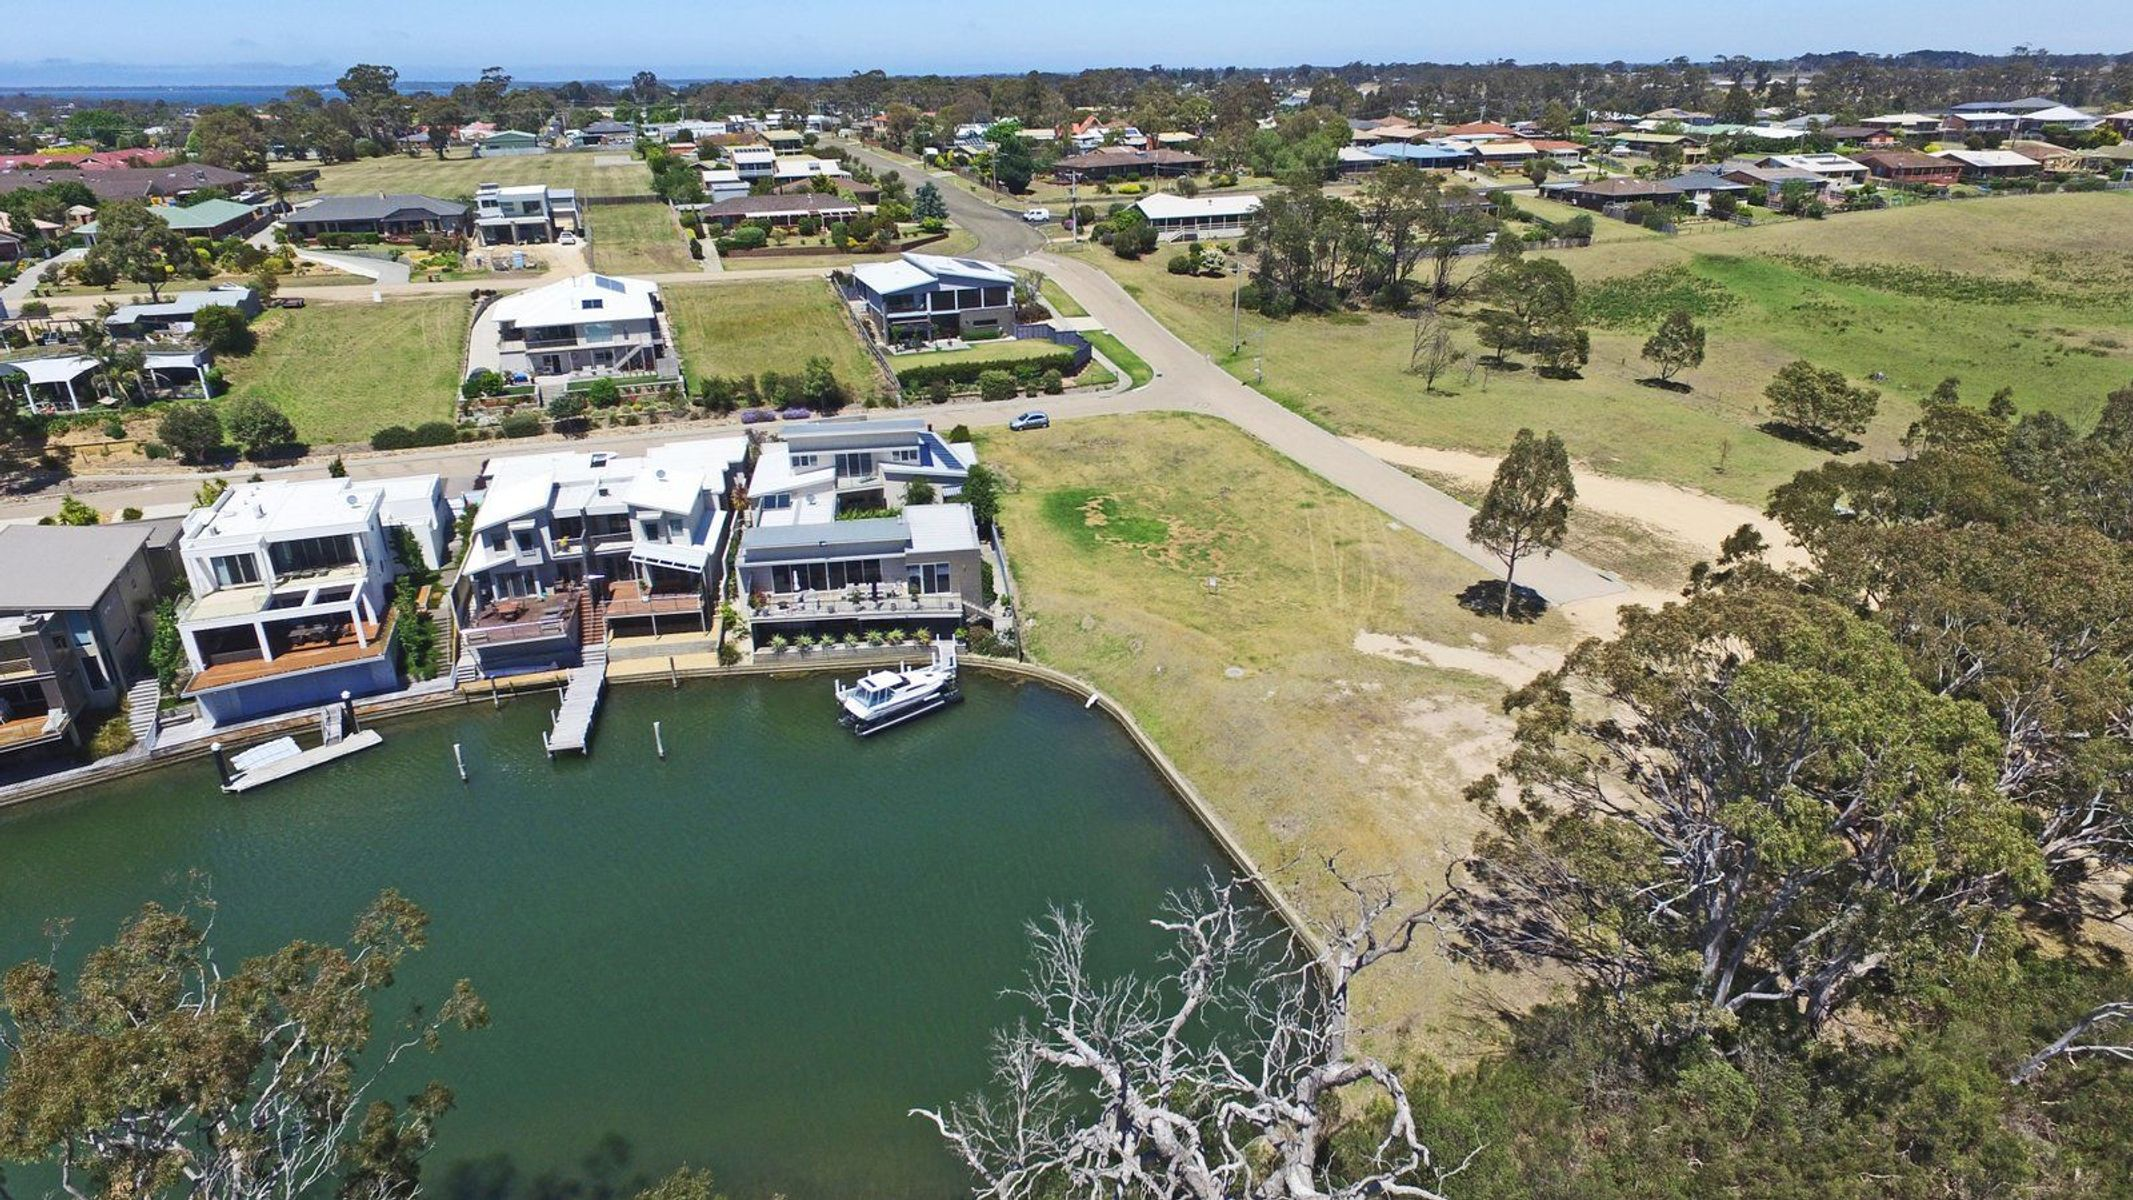 Lot 1, 1 The Inlet, Paynesville, VIC 3880